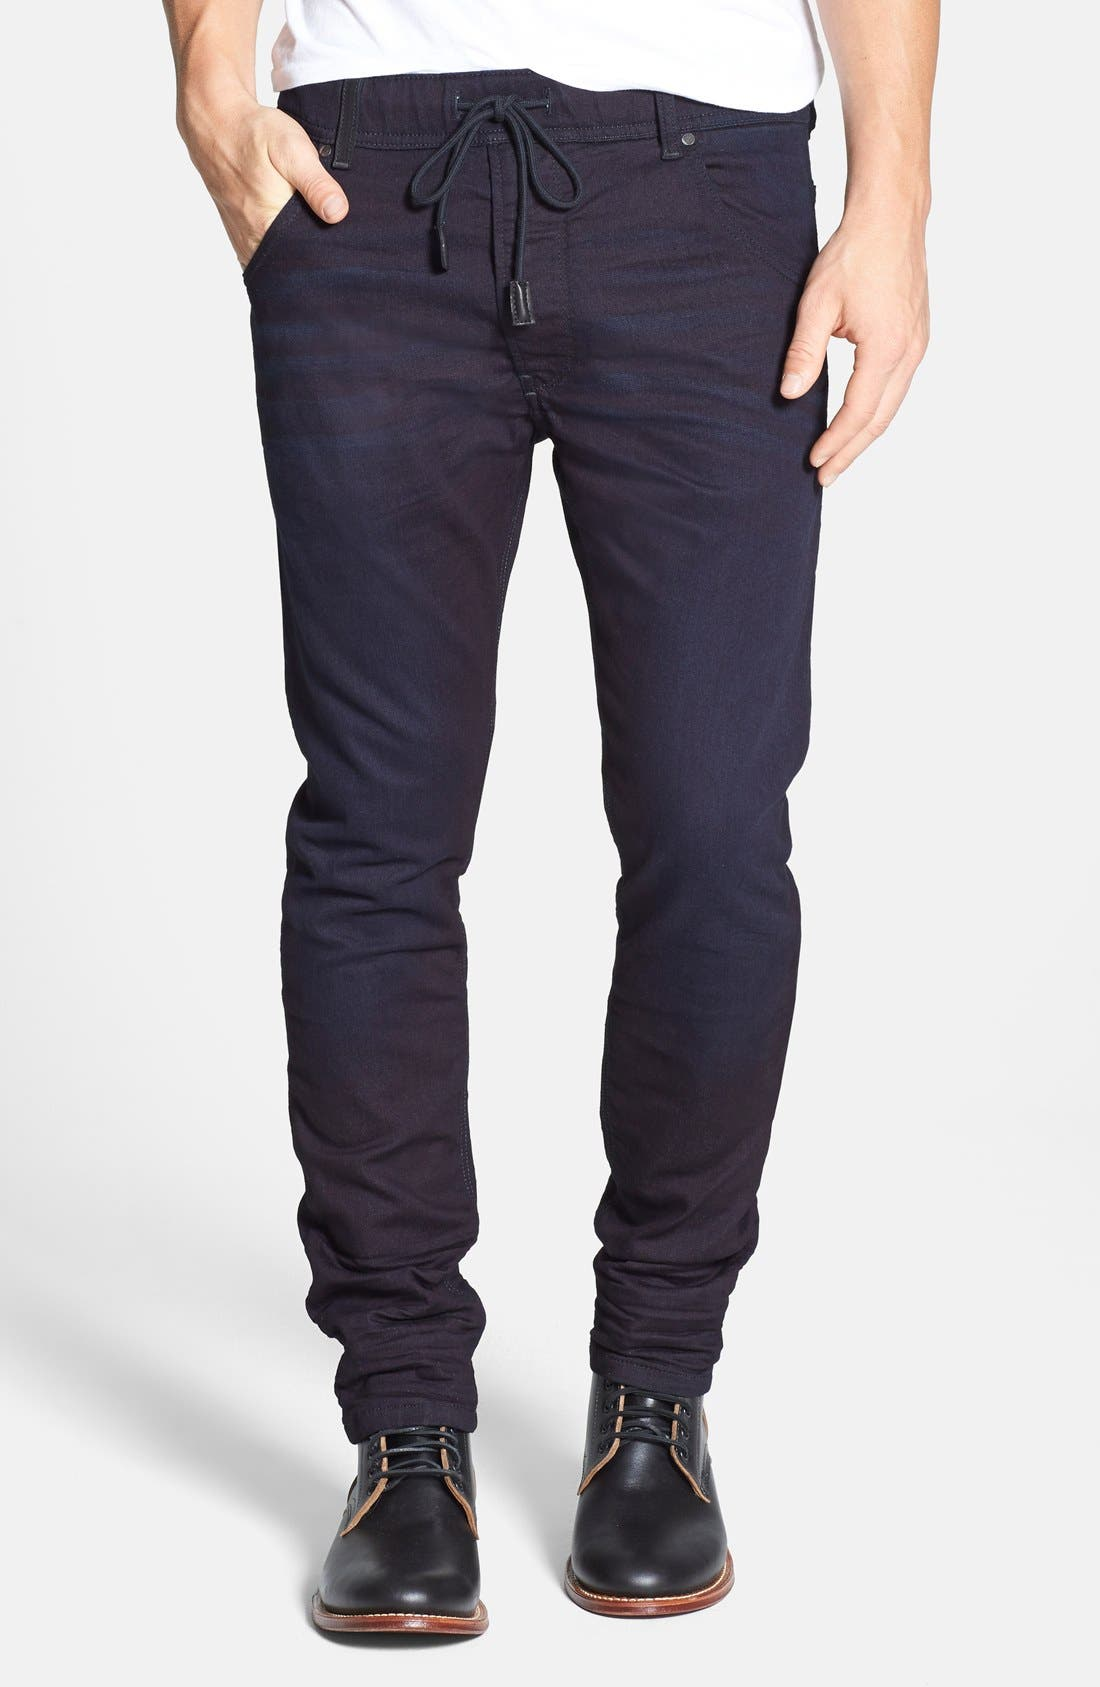 Krooley Jogg Slouchy Skinny Fit Jeans,                             Main thumbnail 1, color,                             0829P